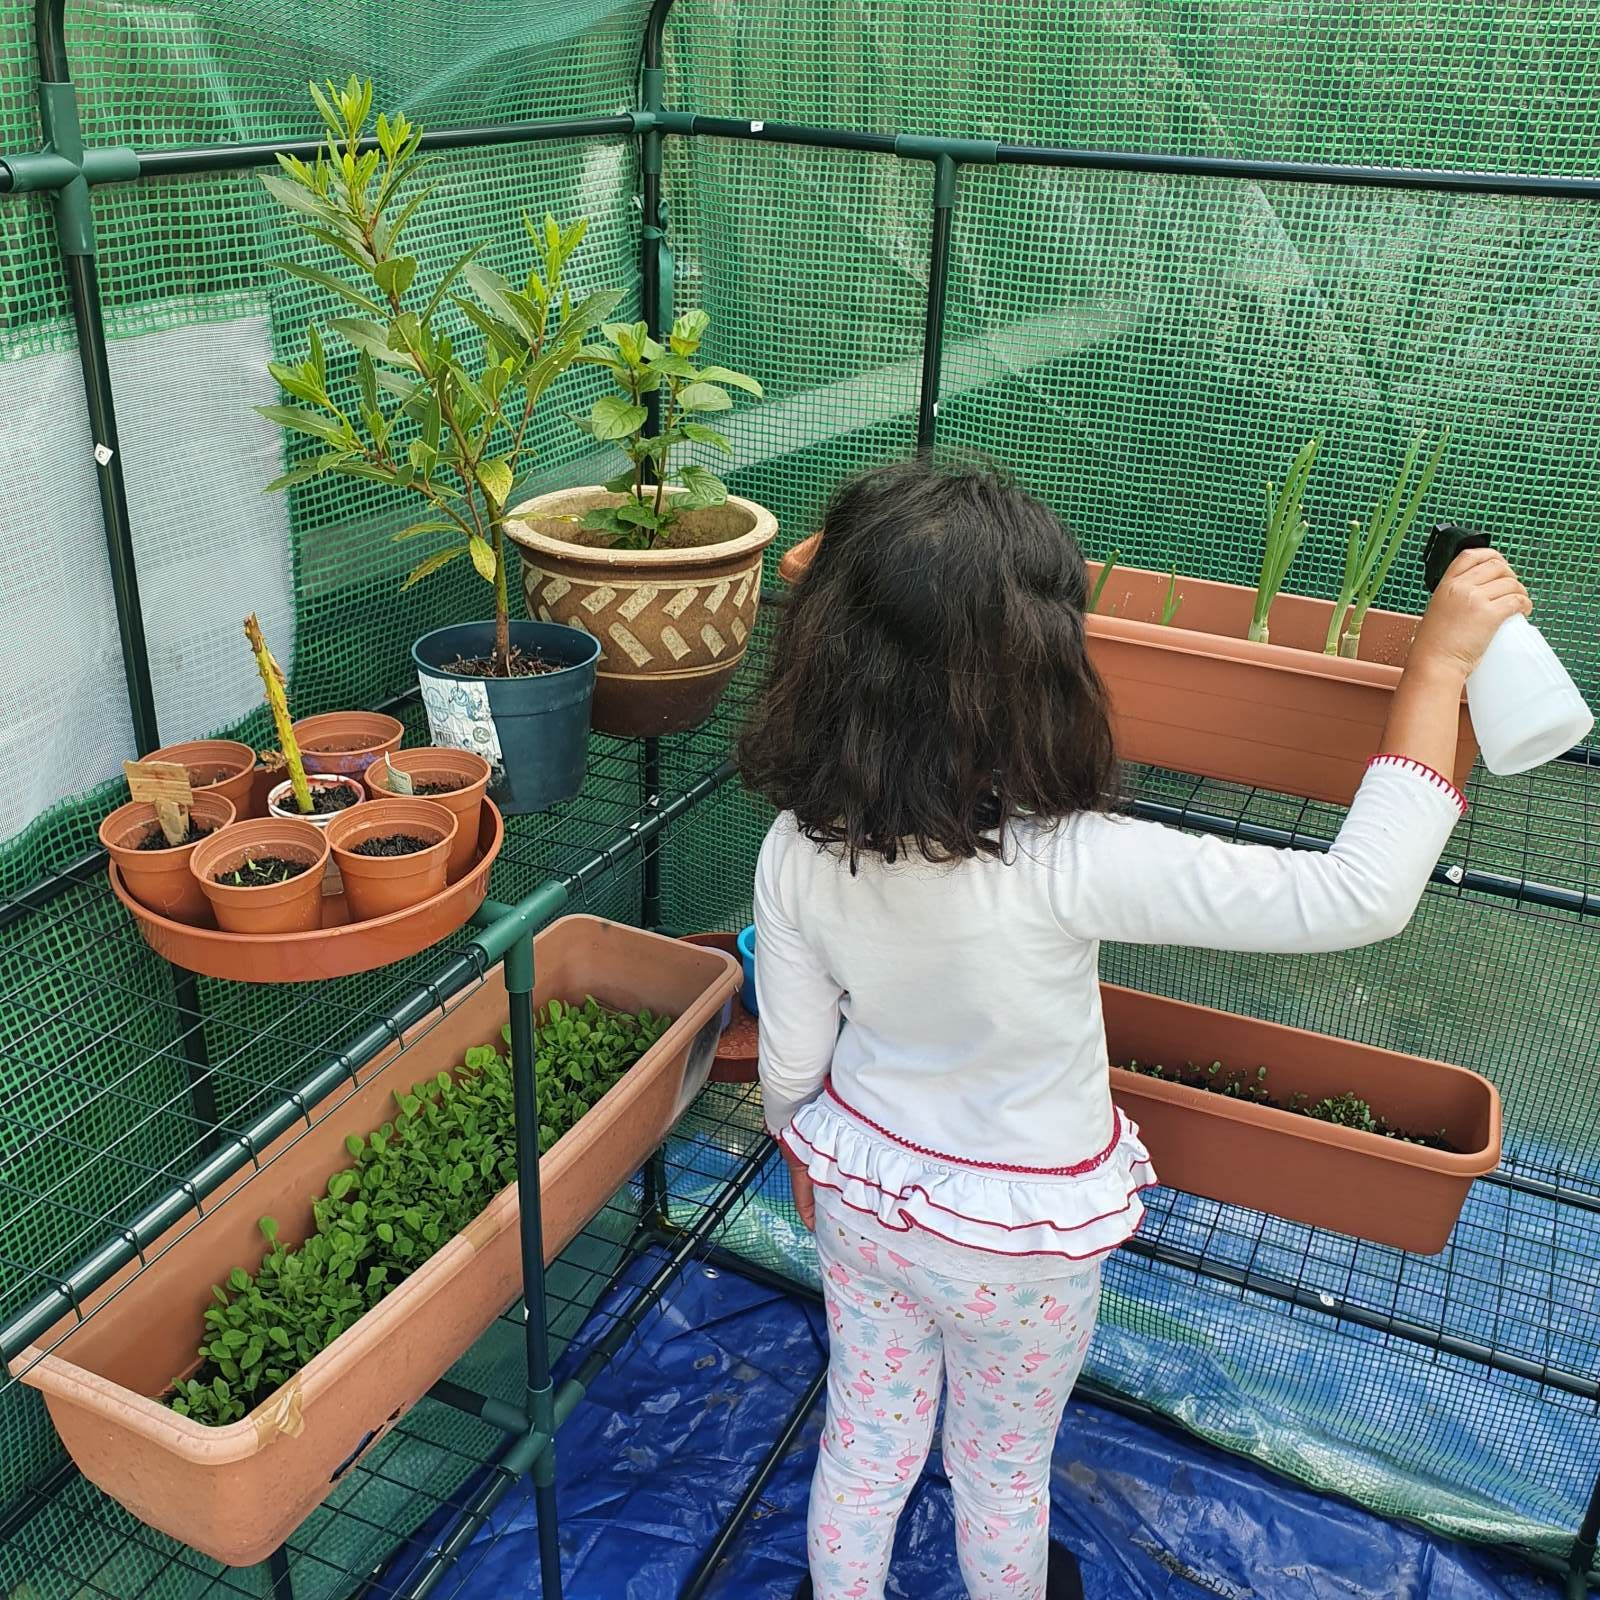 Aria_watering_plants_in_green_house